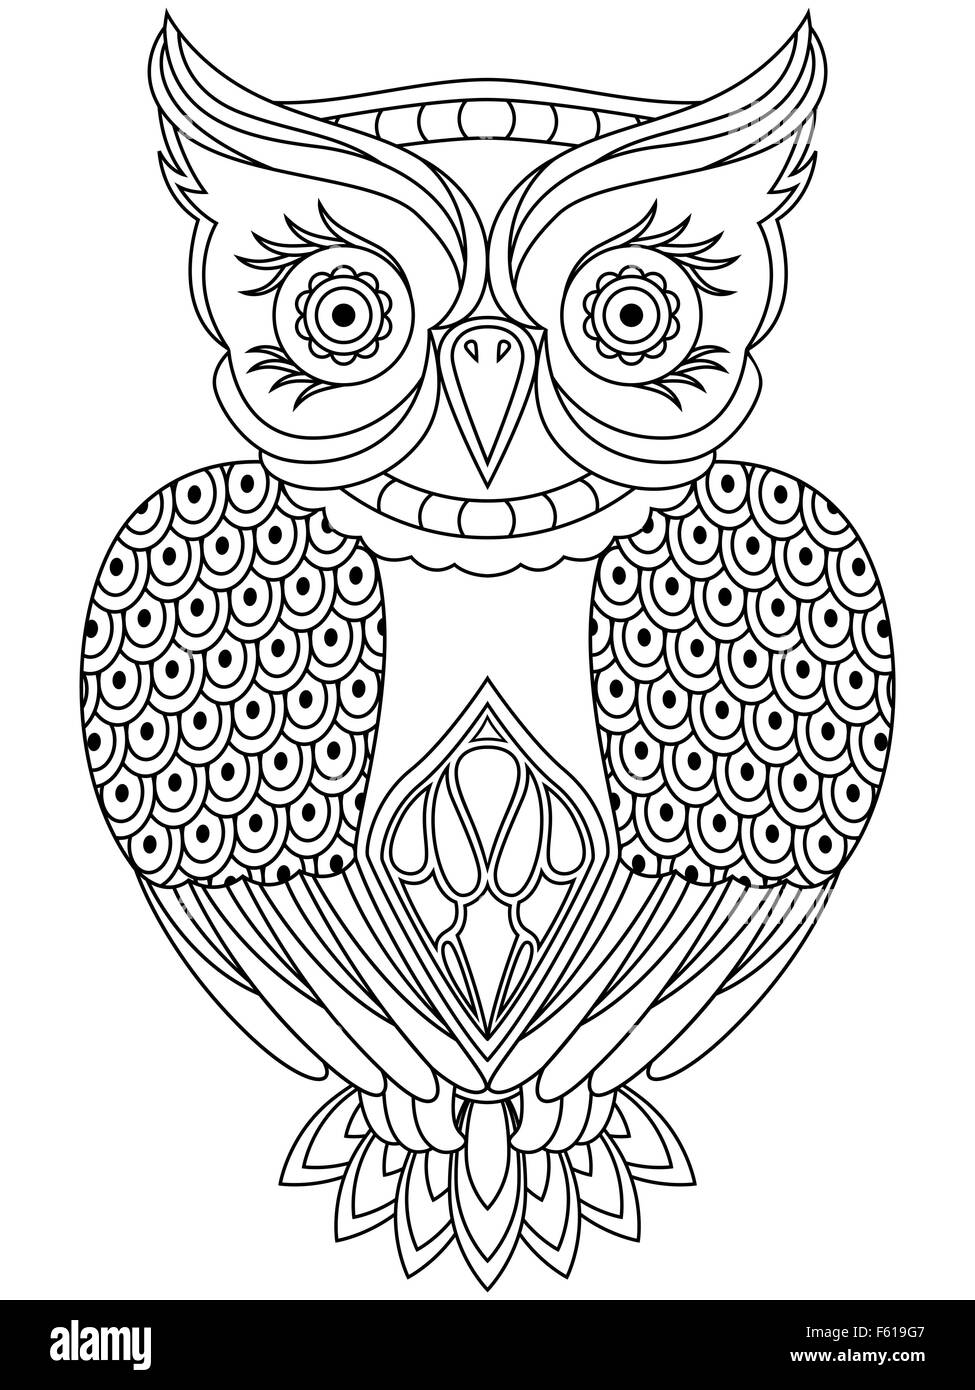 Abstract outline of respected owl, cartoon vector illustration isolated on a white background - Stock Image